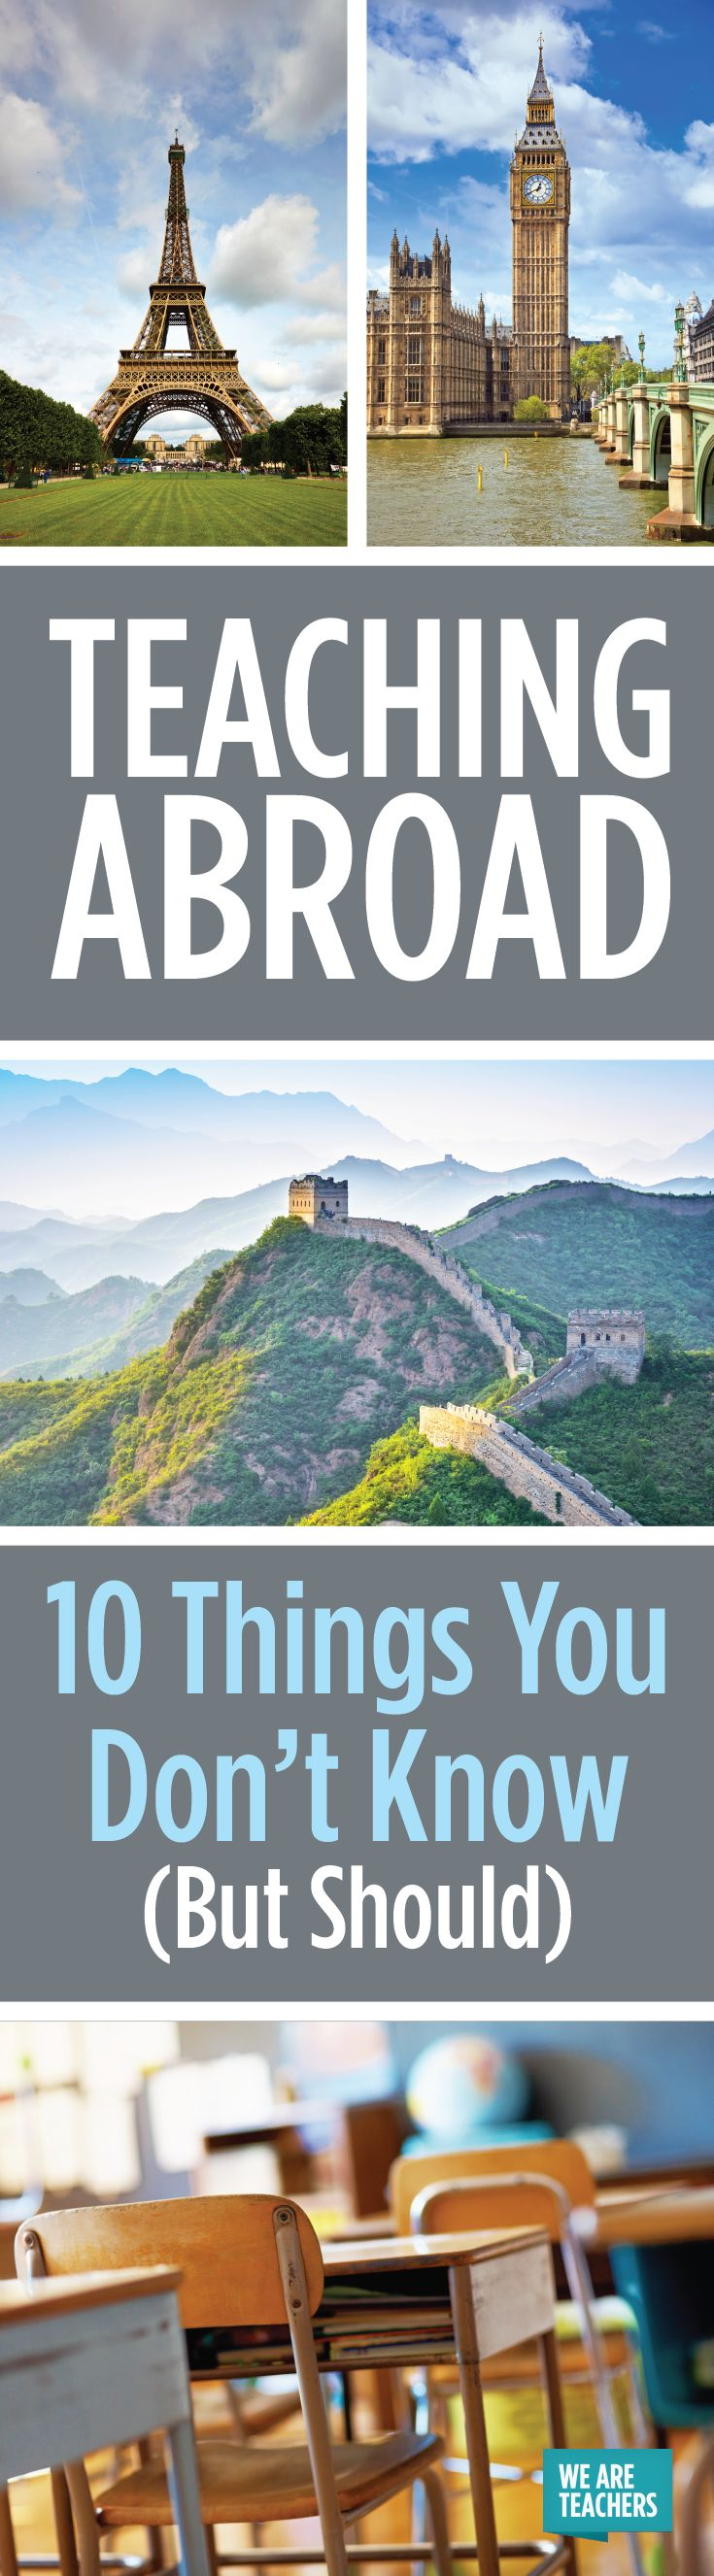 Teaching Abroad: 10 Things You Don't Know (But Should) - WeAreTeachers